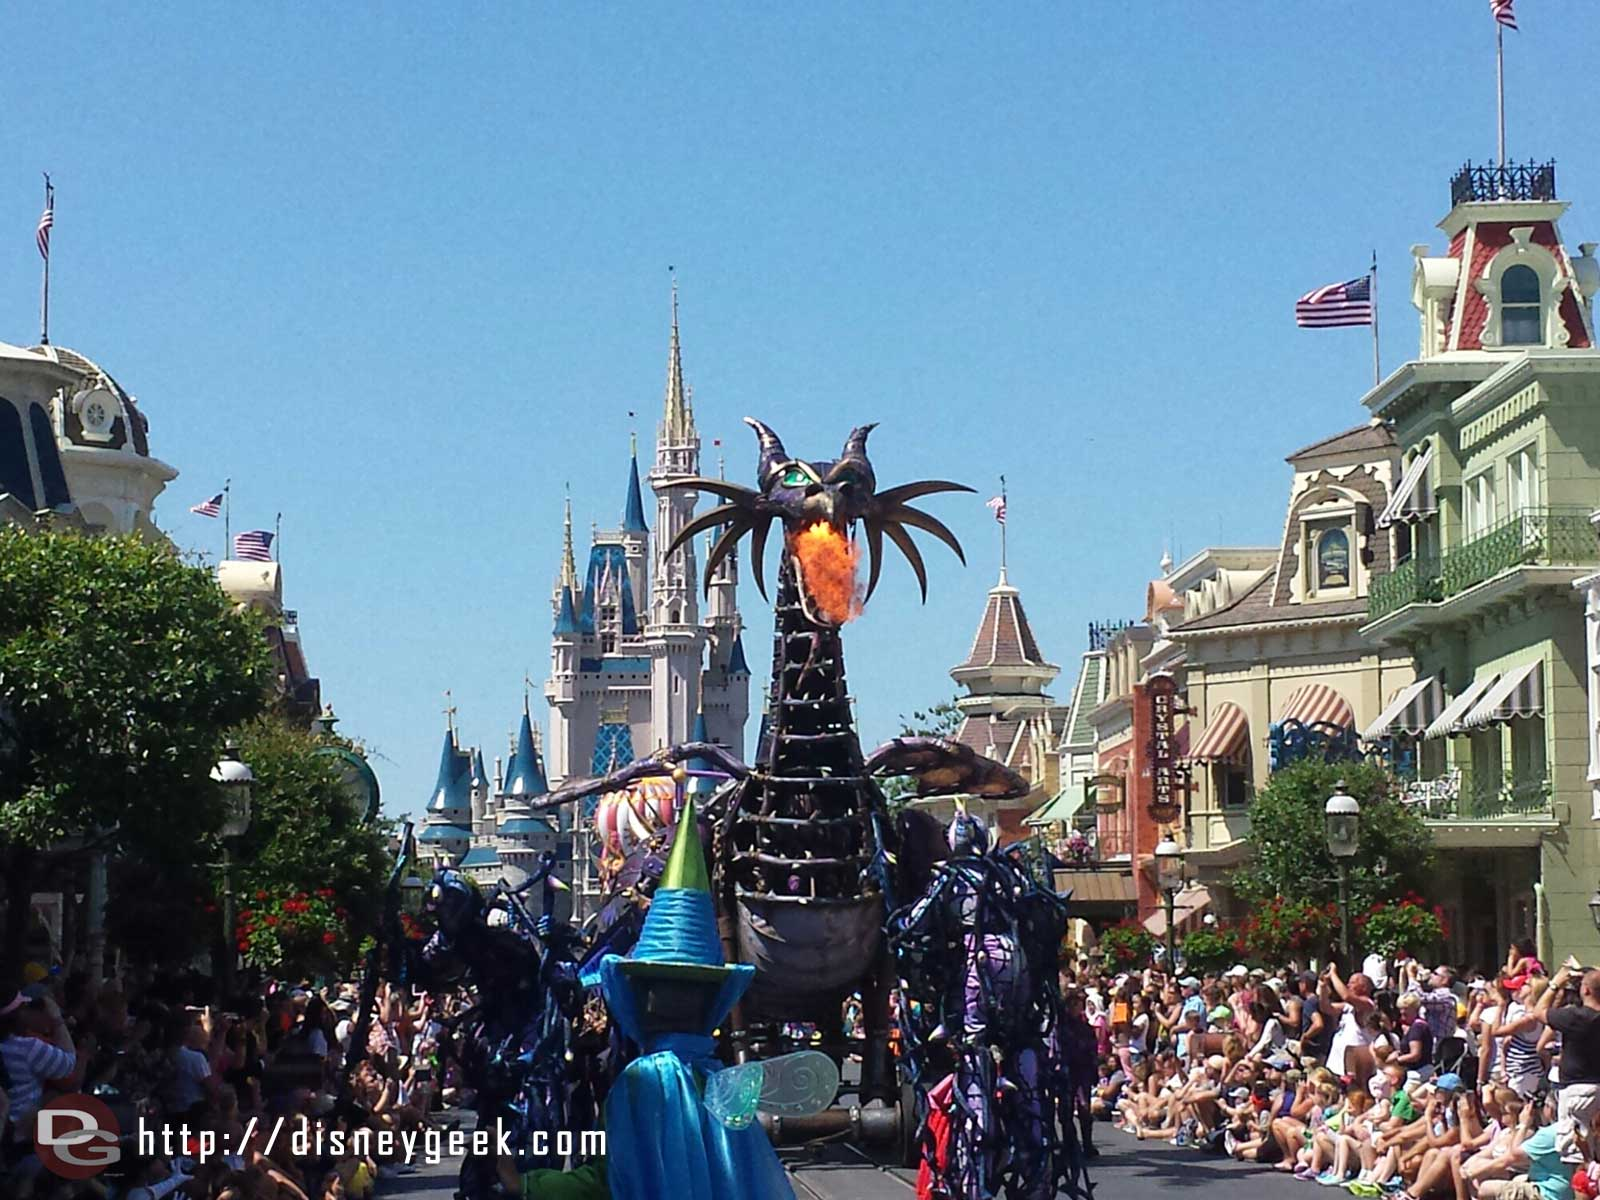 Maleficent breathing fire in Festival of Fantasy Parade at the Magic Kingdom #WDW